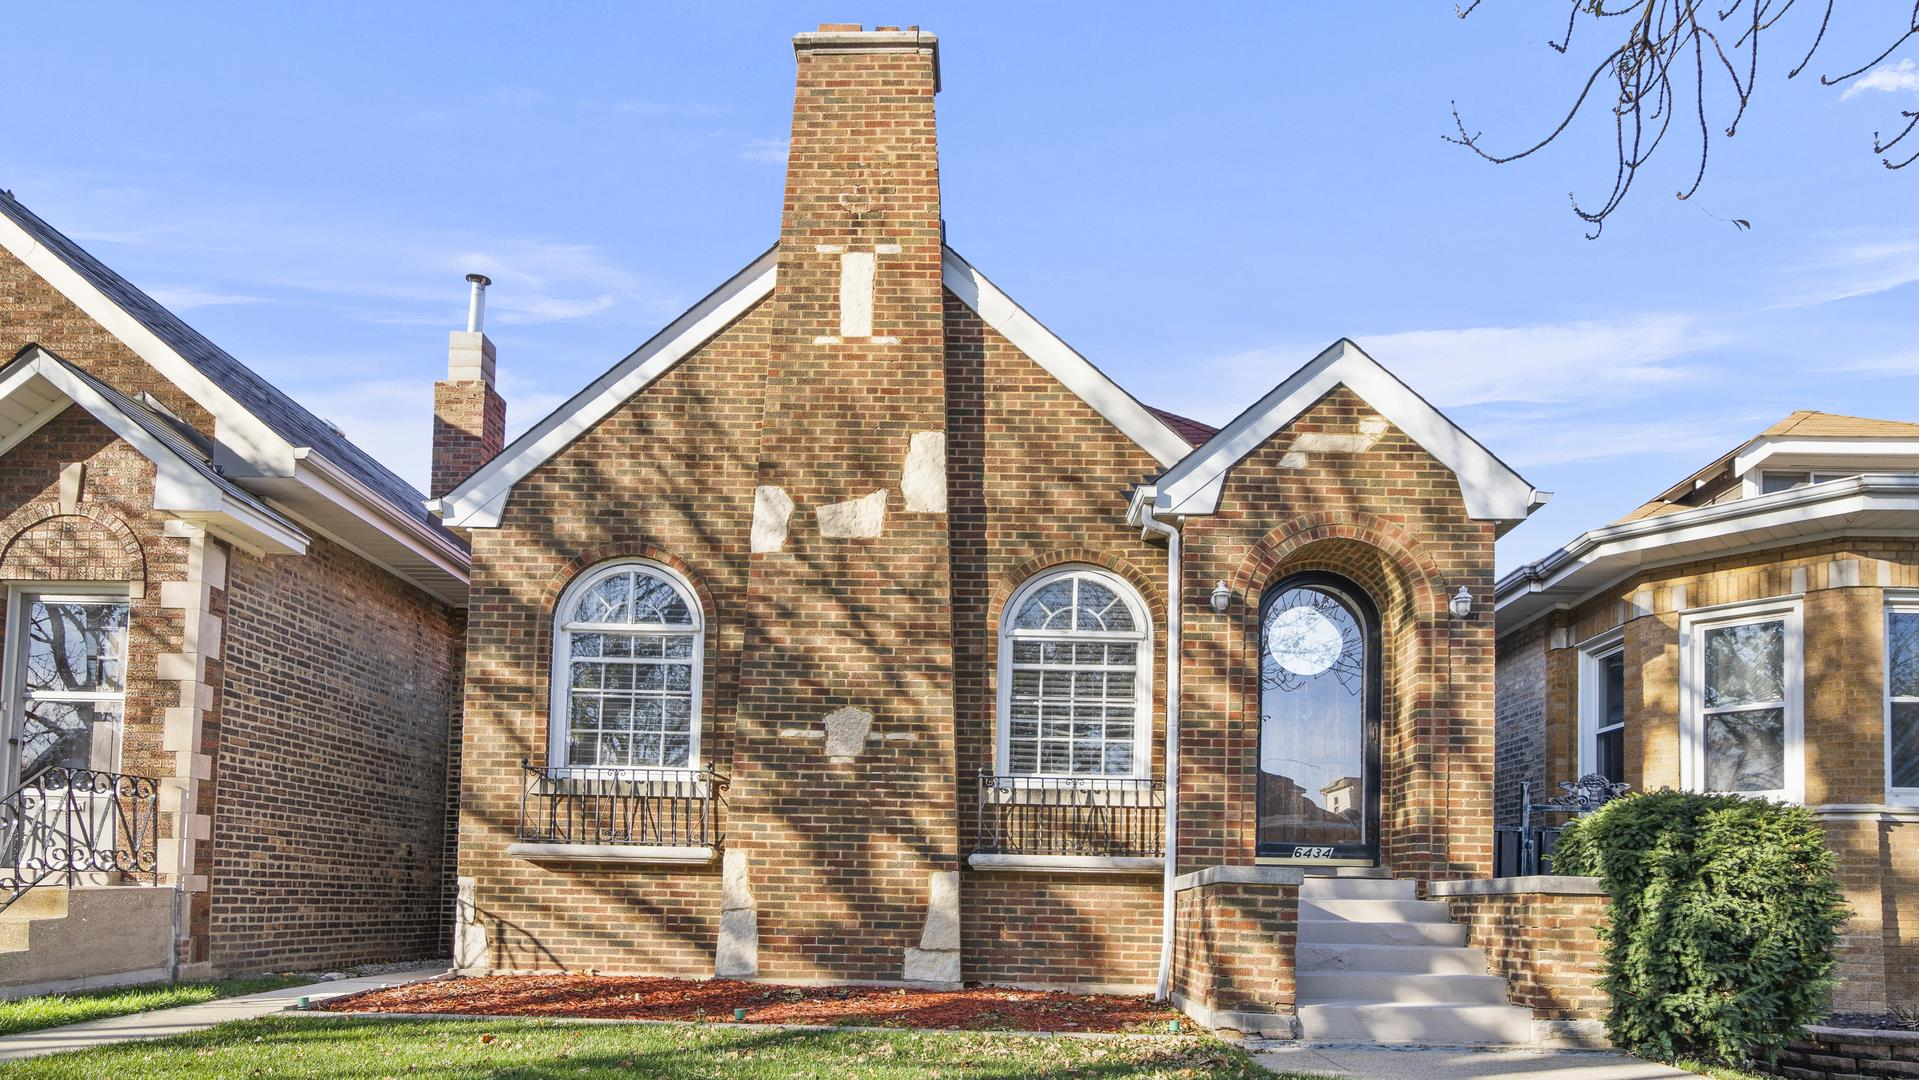 6434 S Keeler Avenue, Chicago, IL 60629 - #: 10937874